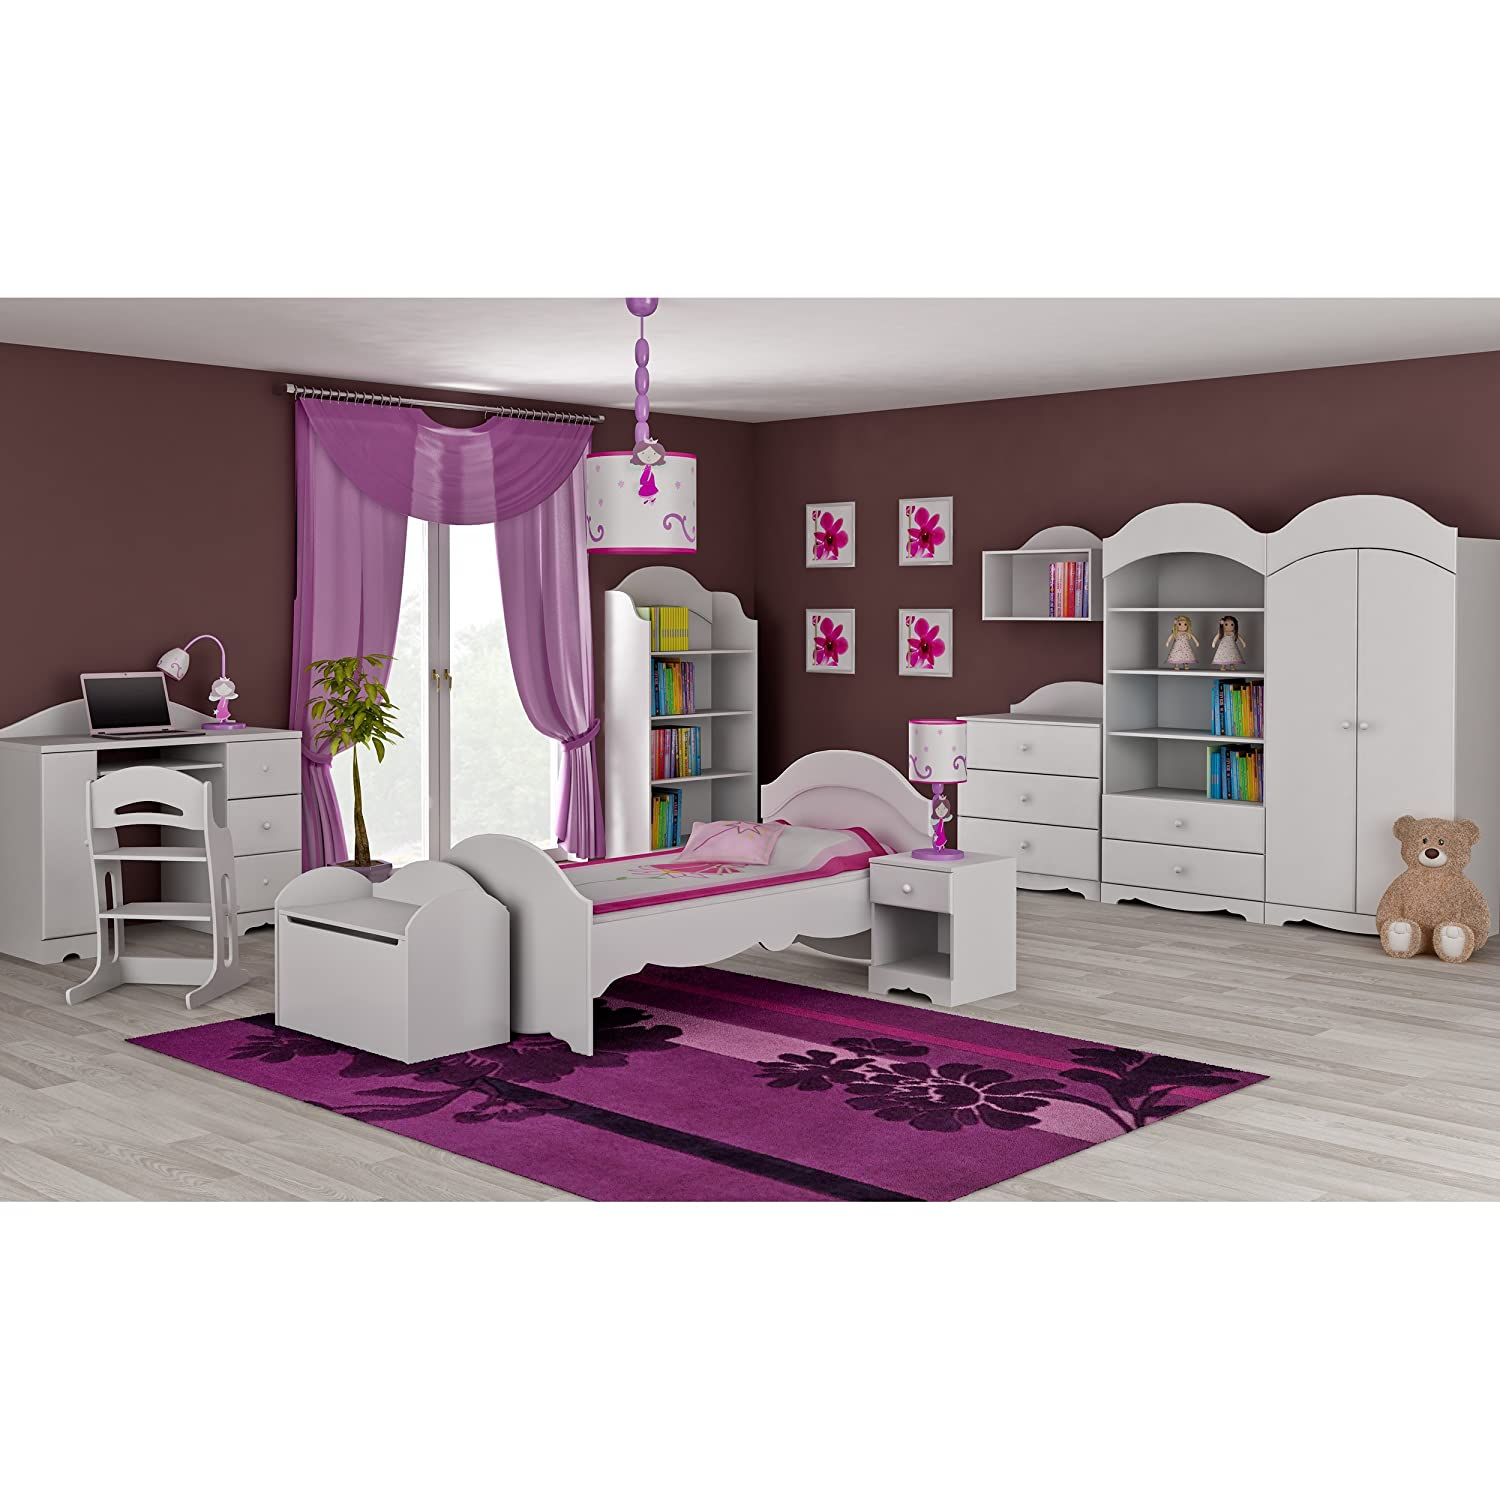 hochbett prinzessin. Black Bedroom Furniture Sets. Home Design Ideas